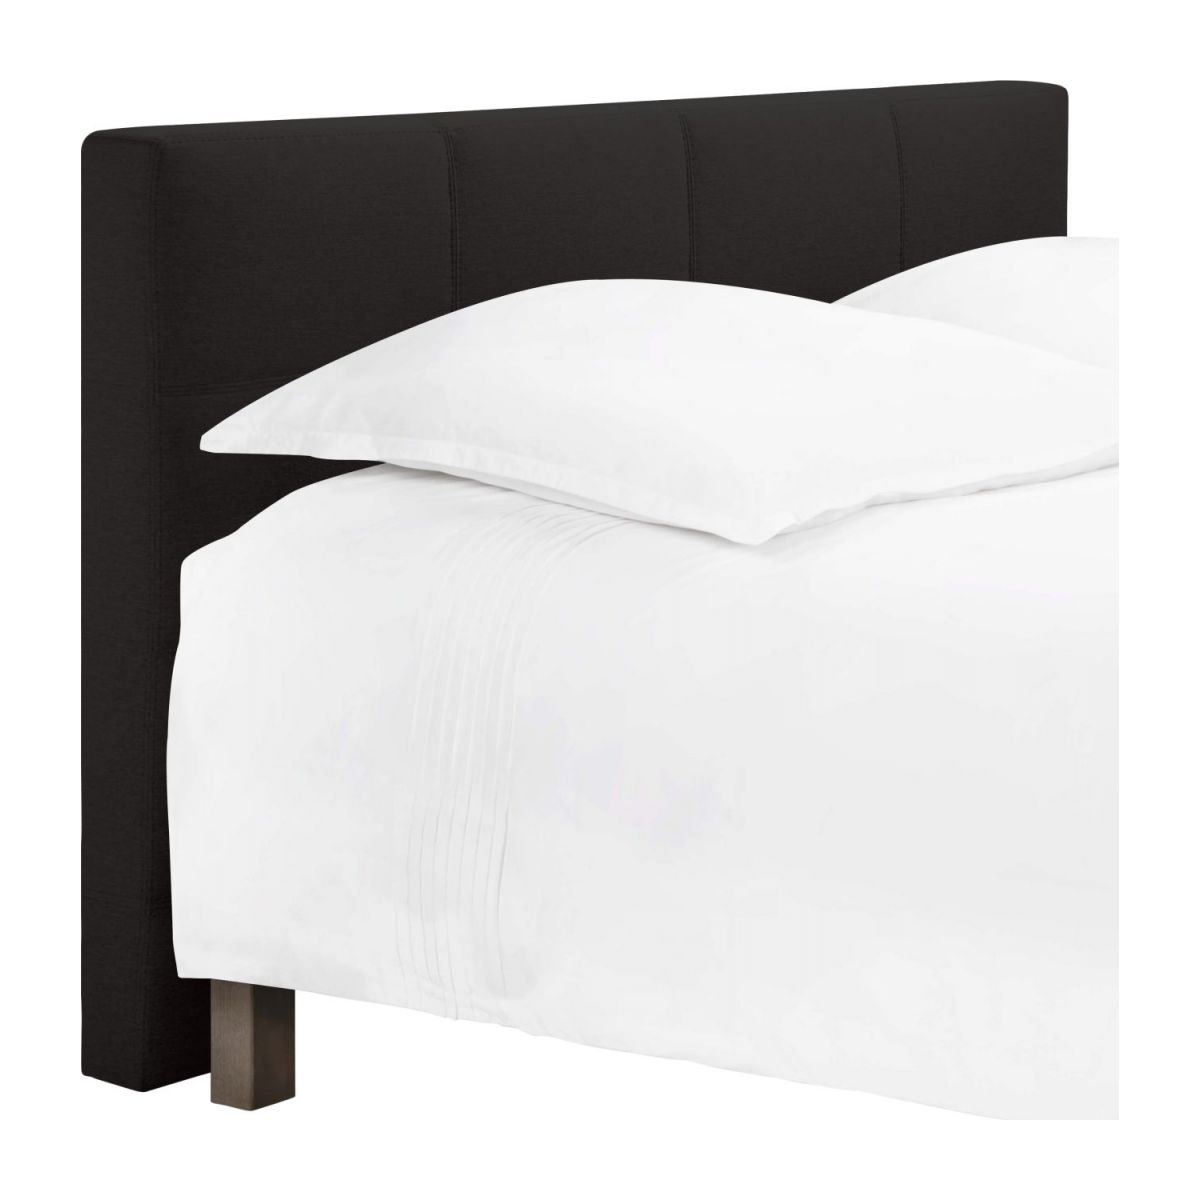 Headboard for 140cm box spring in fabric, anthracite n°1